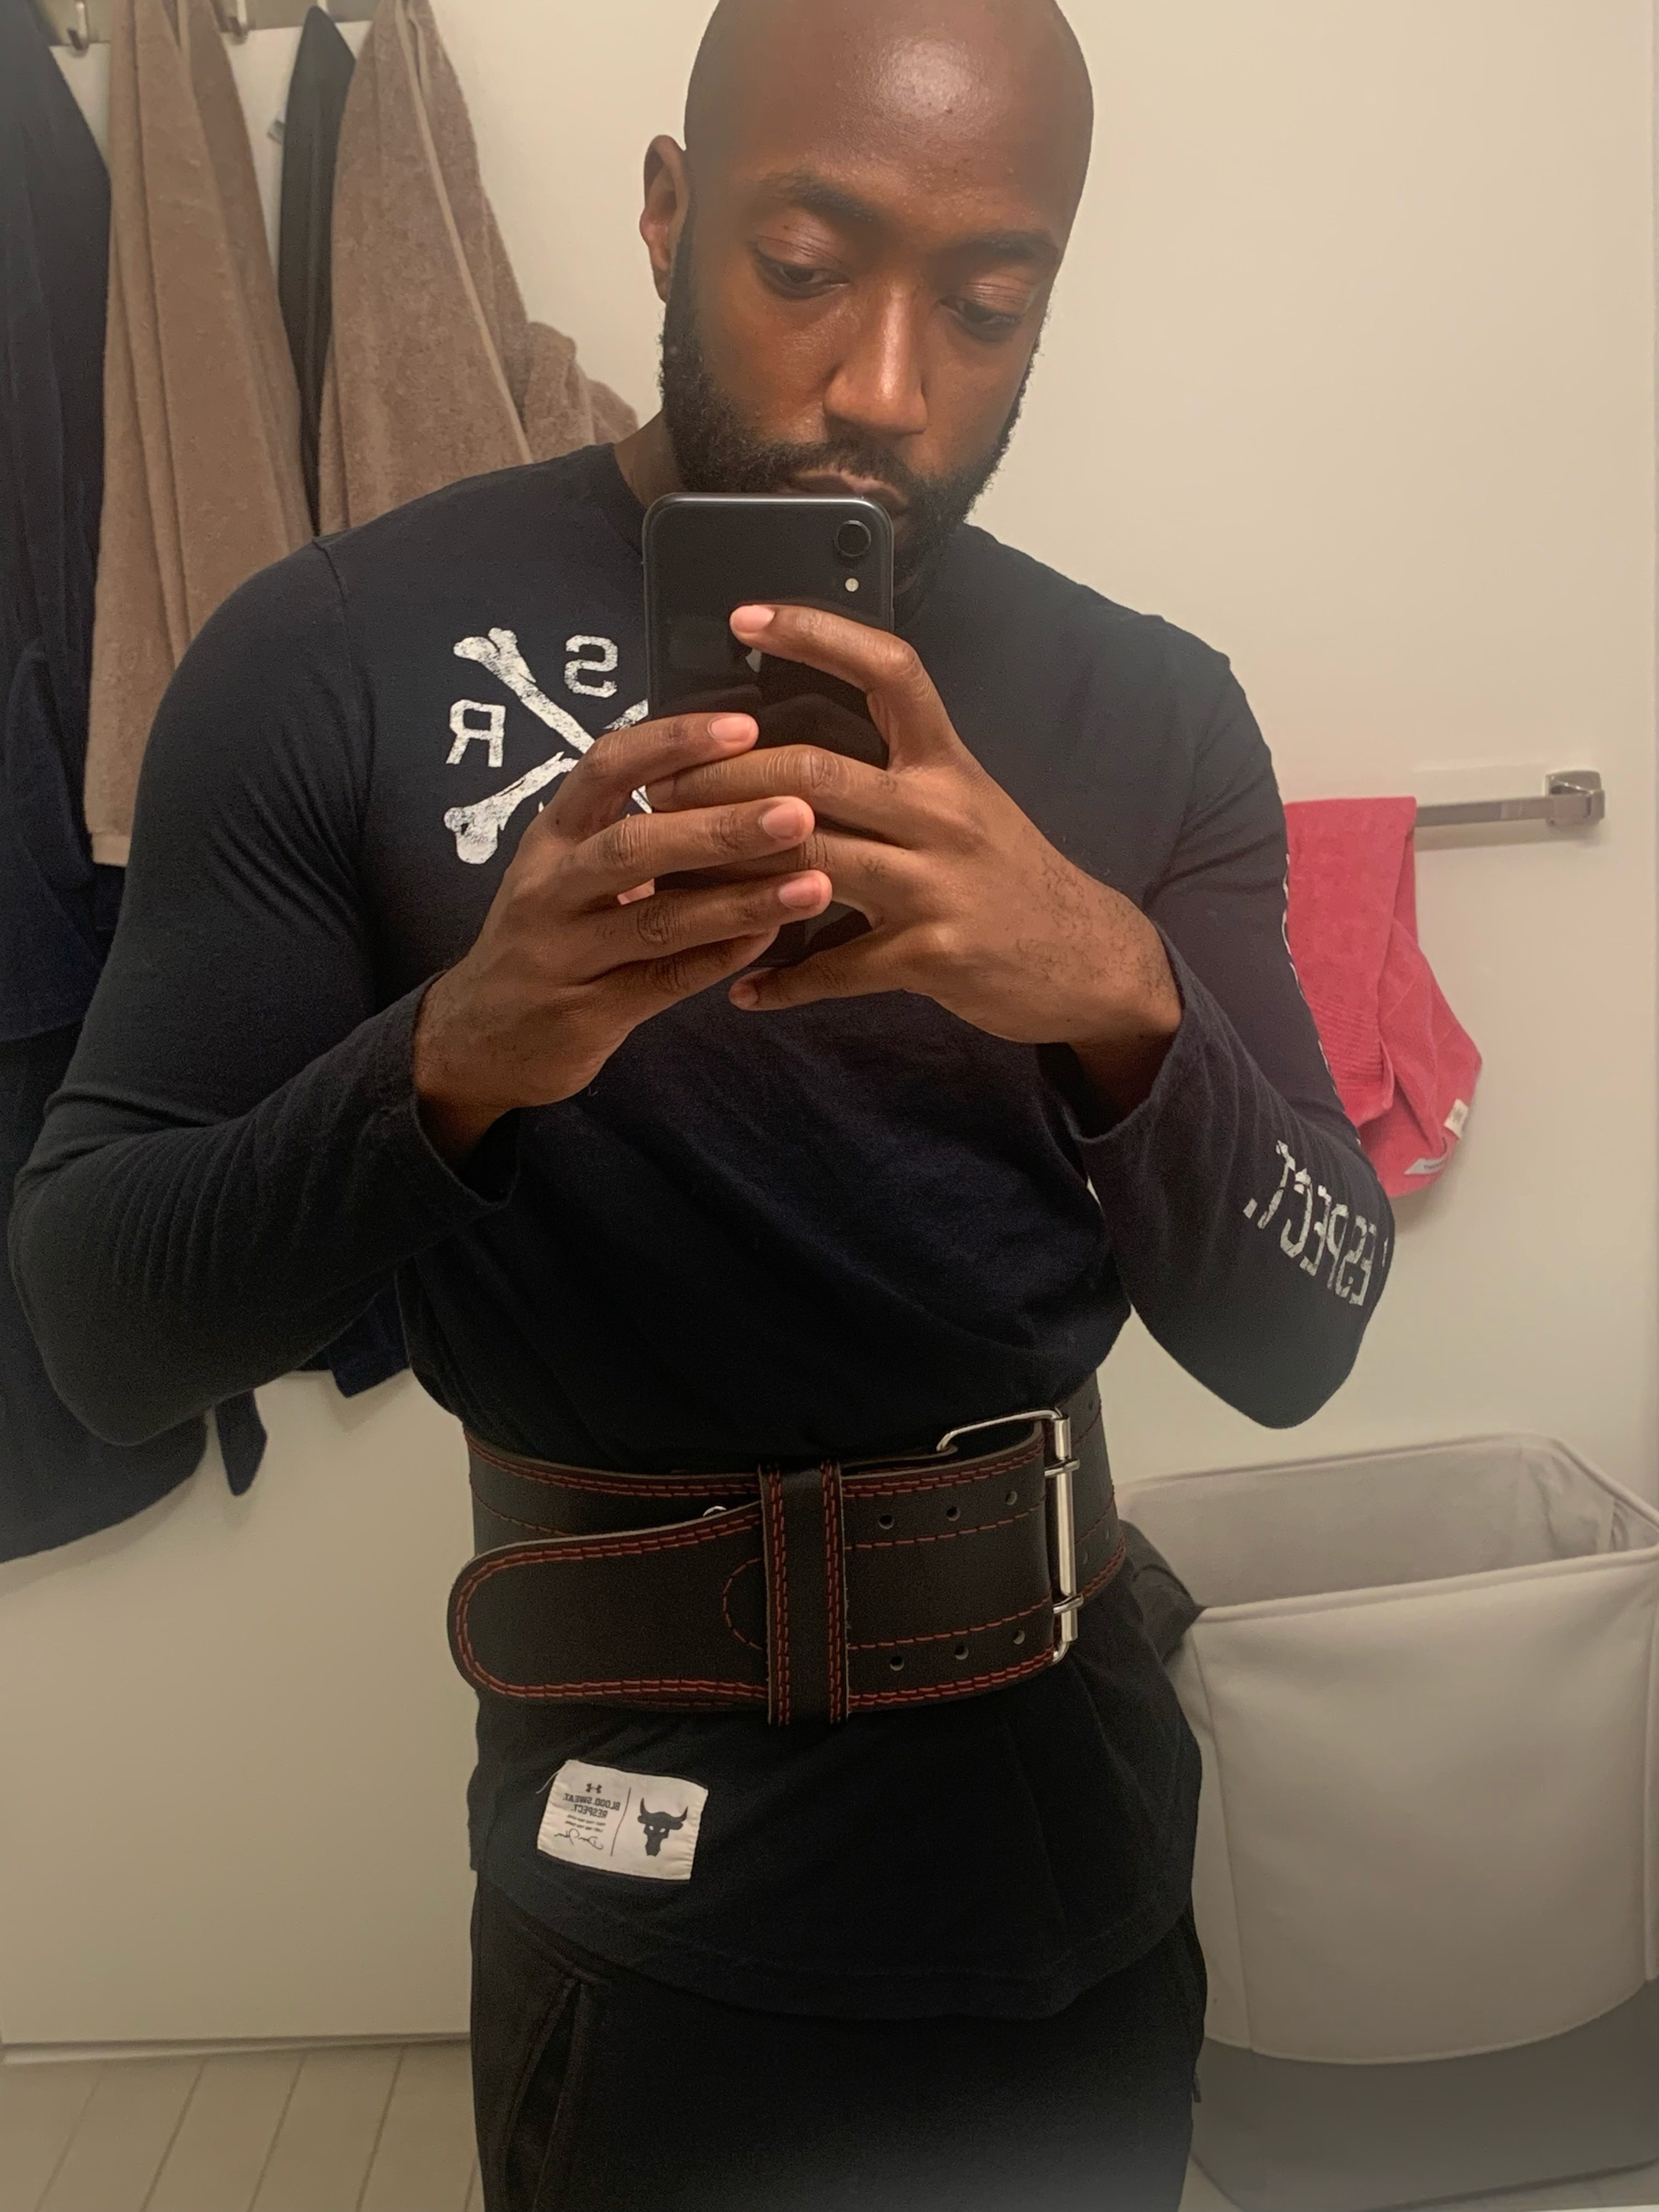 a BuzzFeed Editor wearing the weight-lifting belt